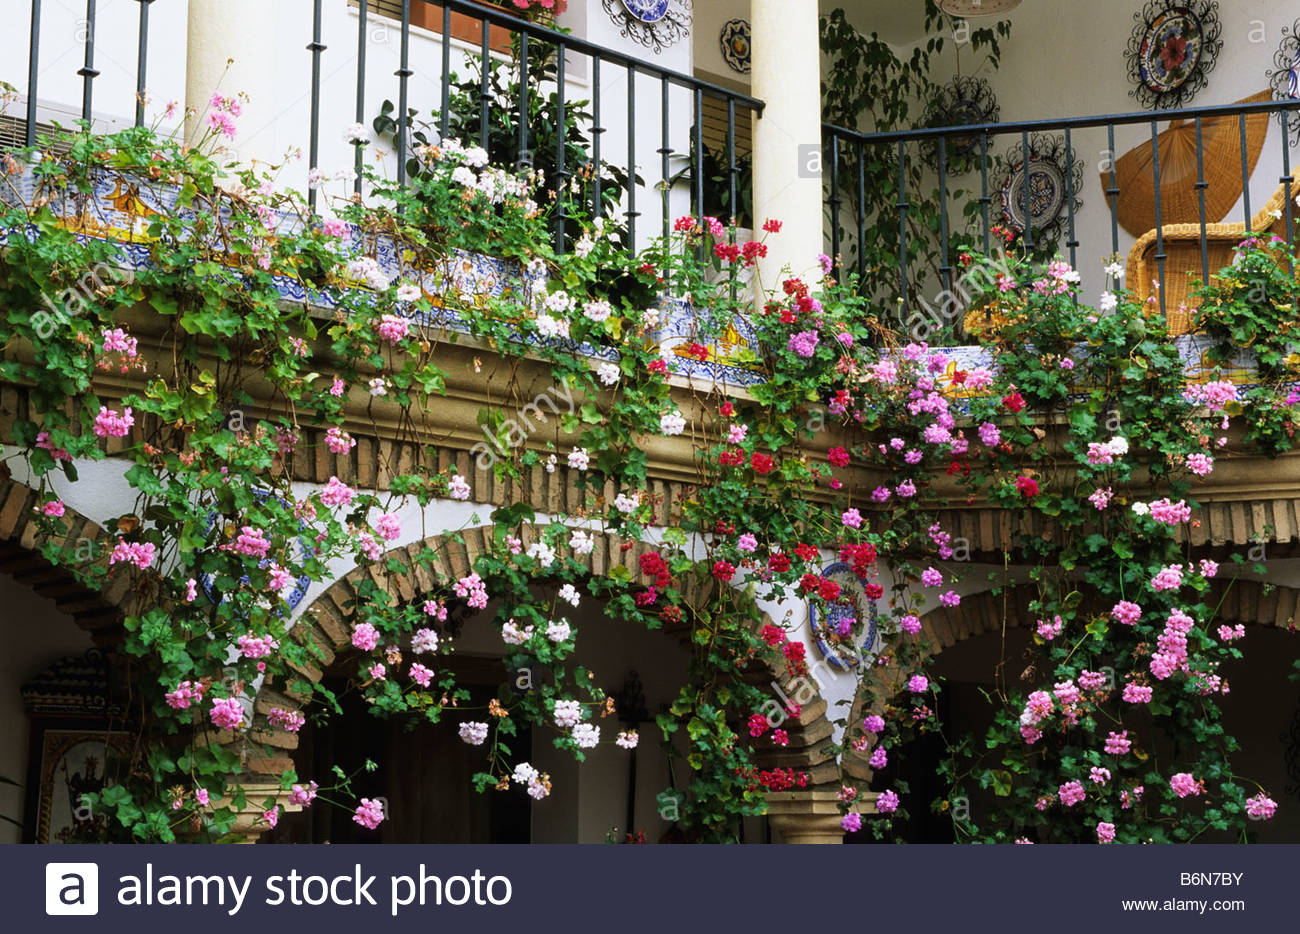 Balcony Garden Stock Photos Balcony Garden Stock Images Alamy